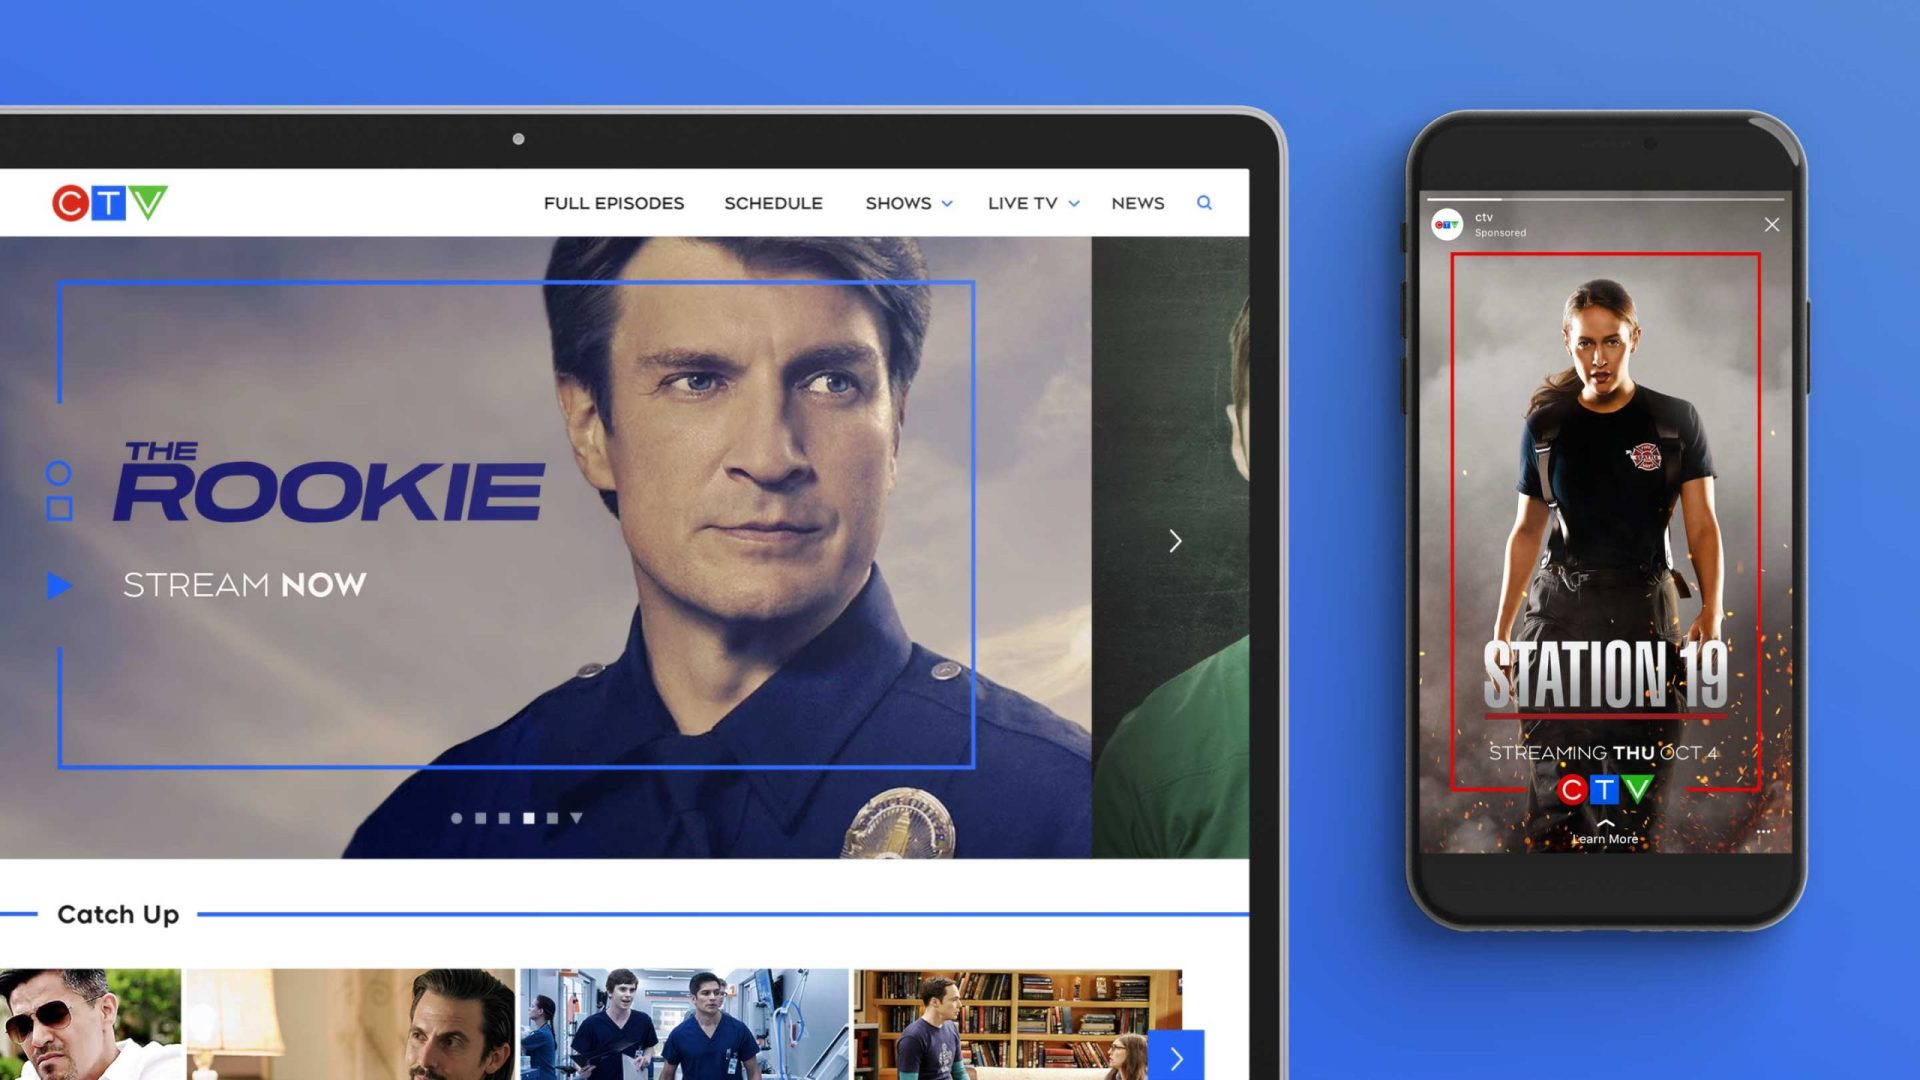 The CTV website & a mobile device shown side-by-side. Both feature a single coloured line that frames the keyart, helping to identify it as CTV content.